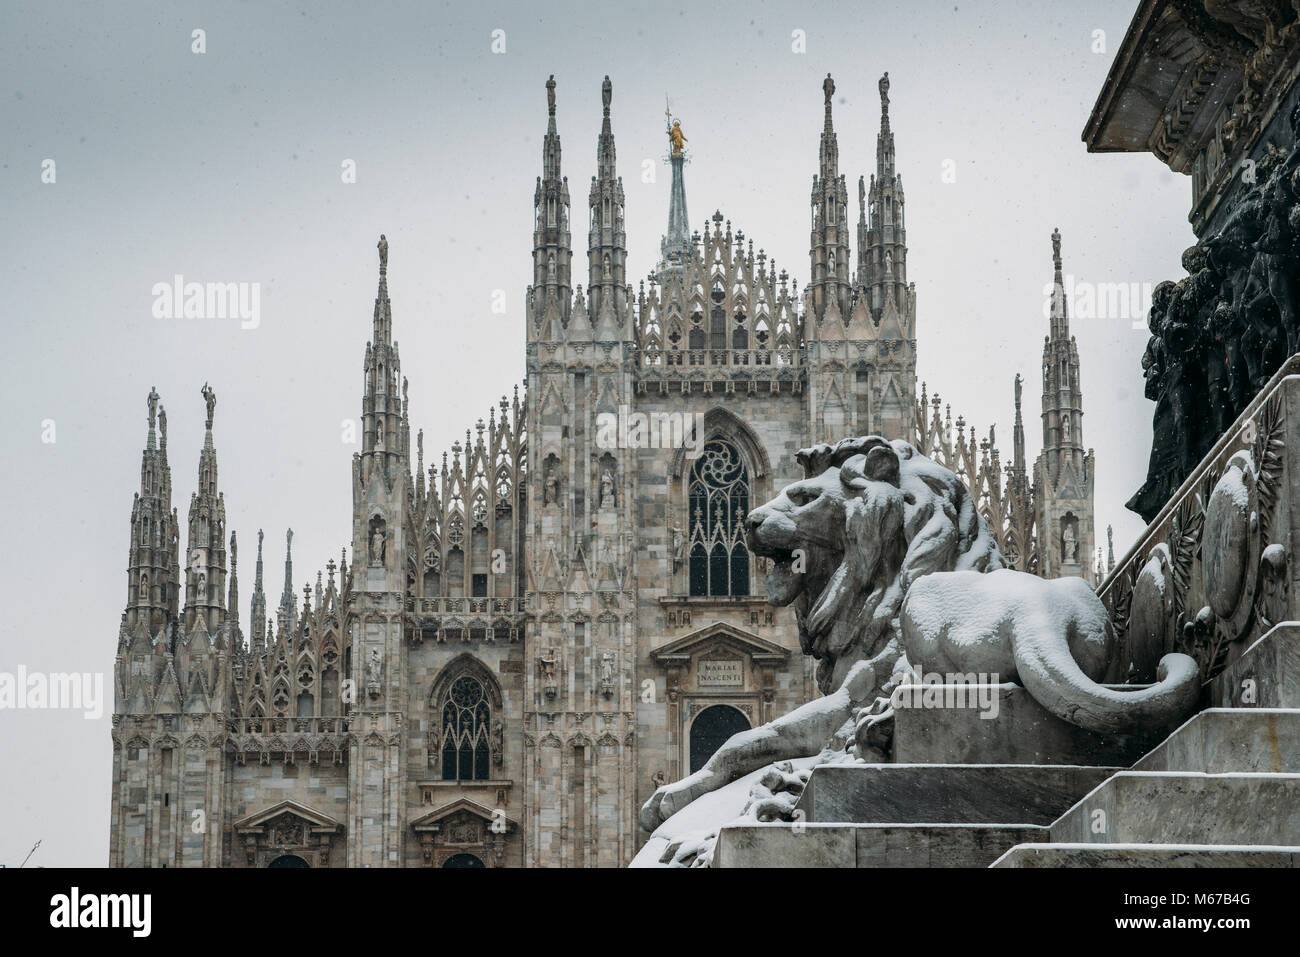 milan-italy-mar-1st-2018-unusually-cold-and-snowy-weather-due-to-a-M67B4G.jpg